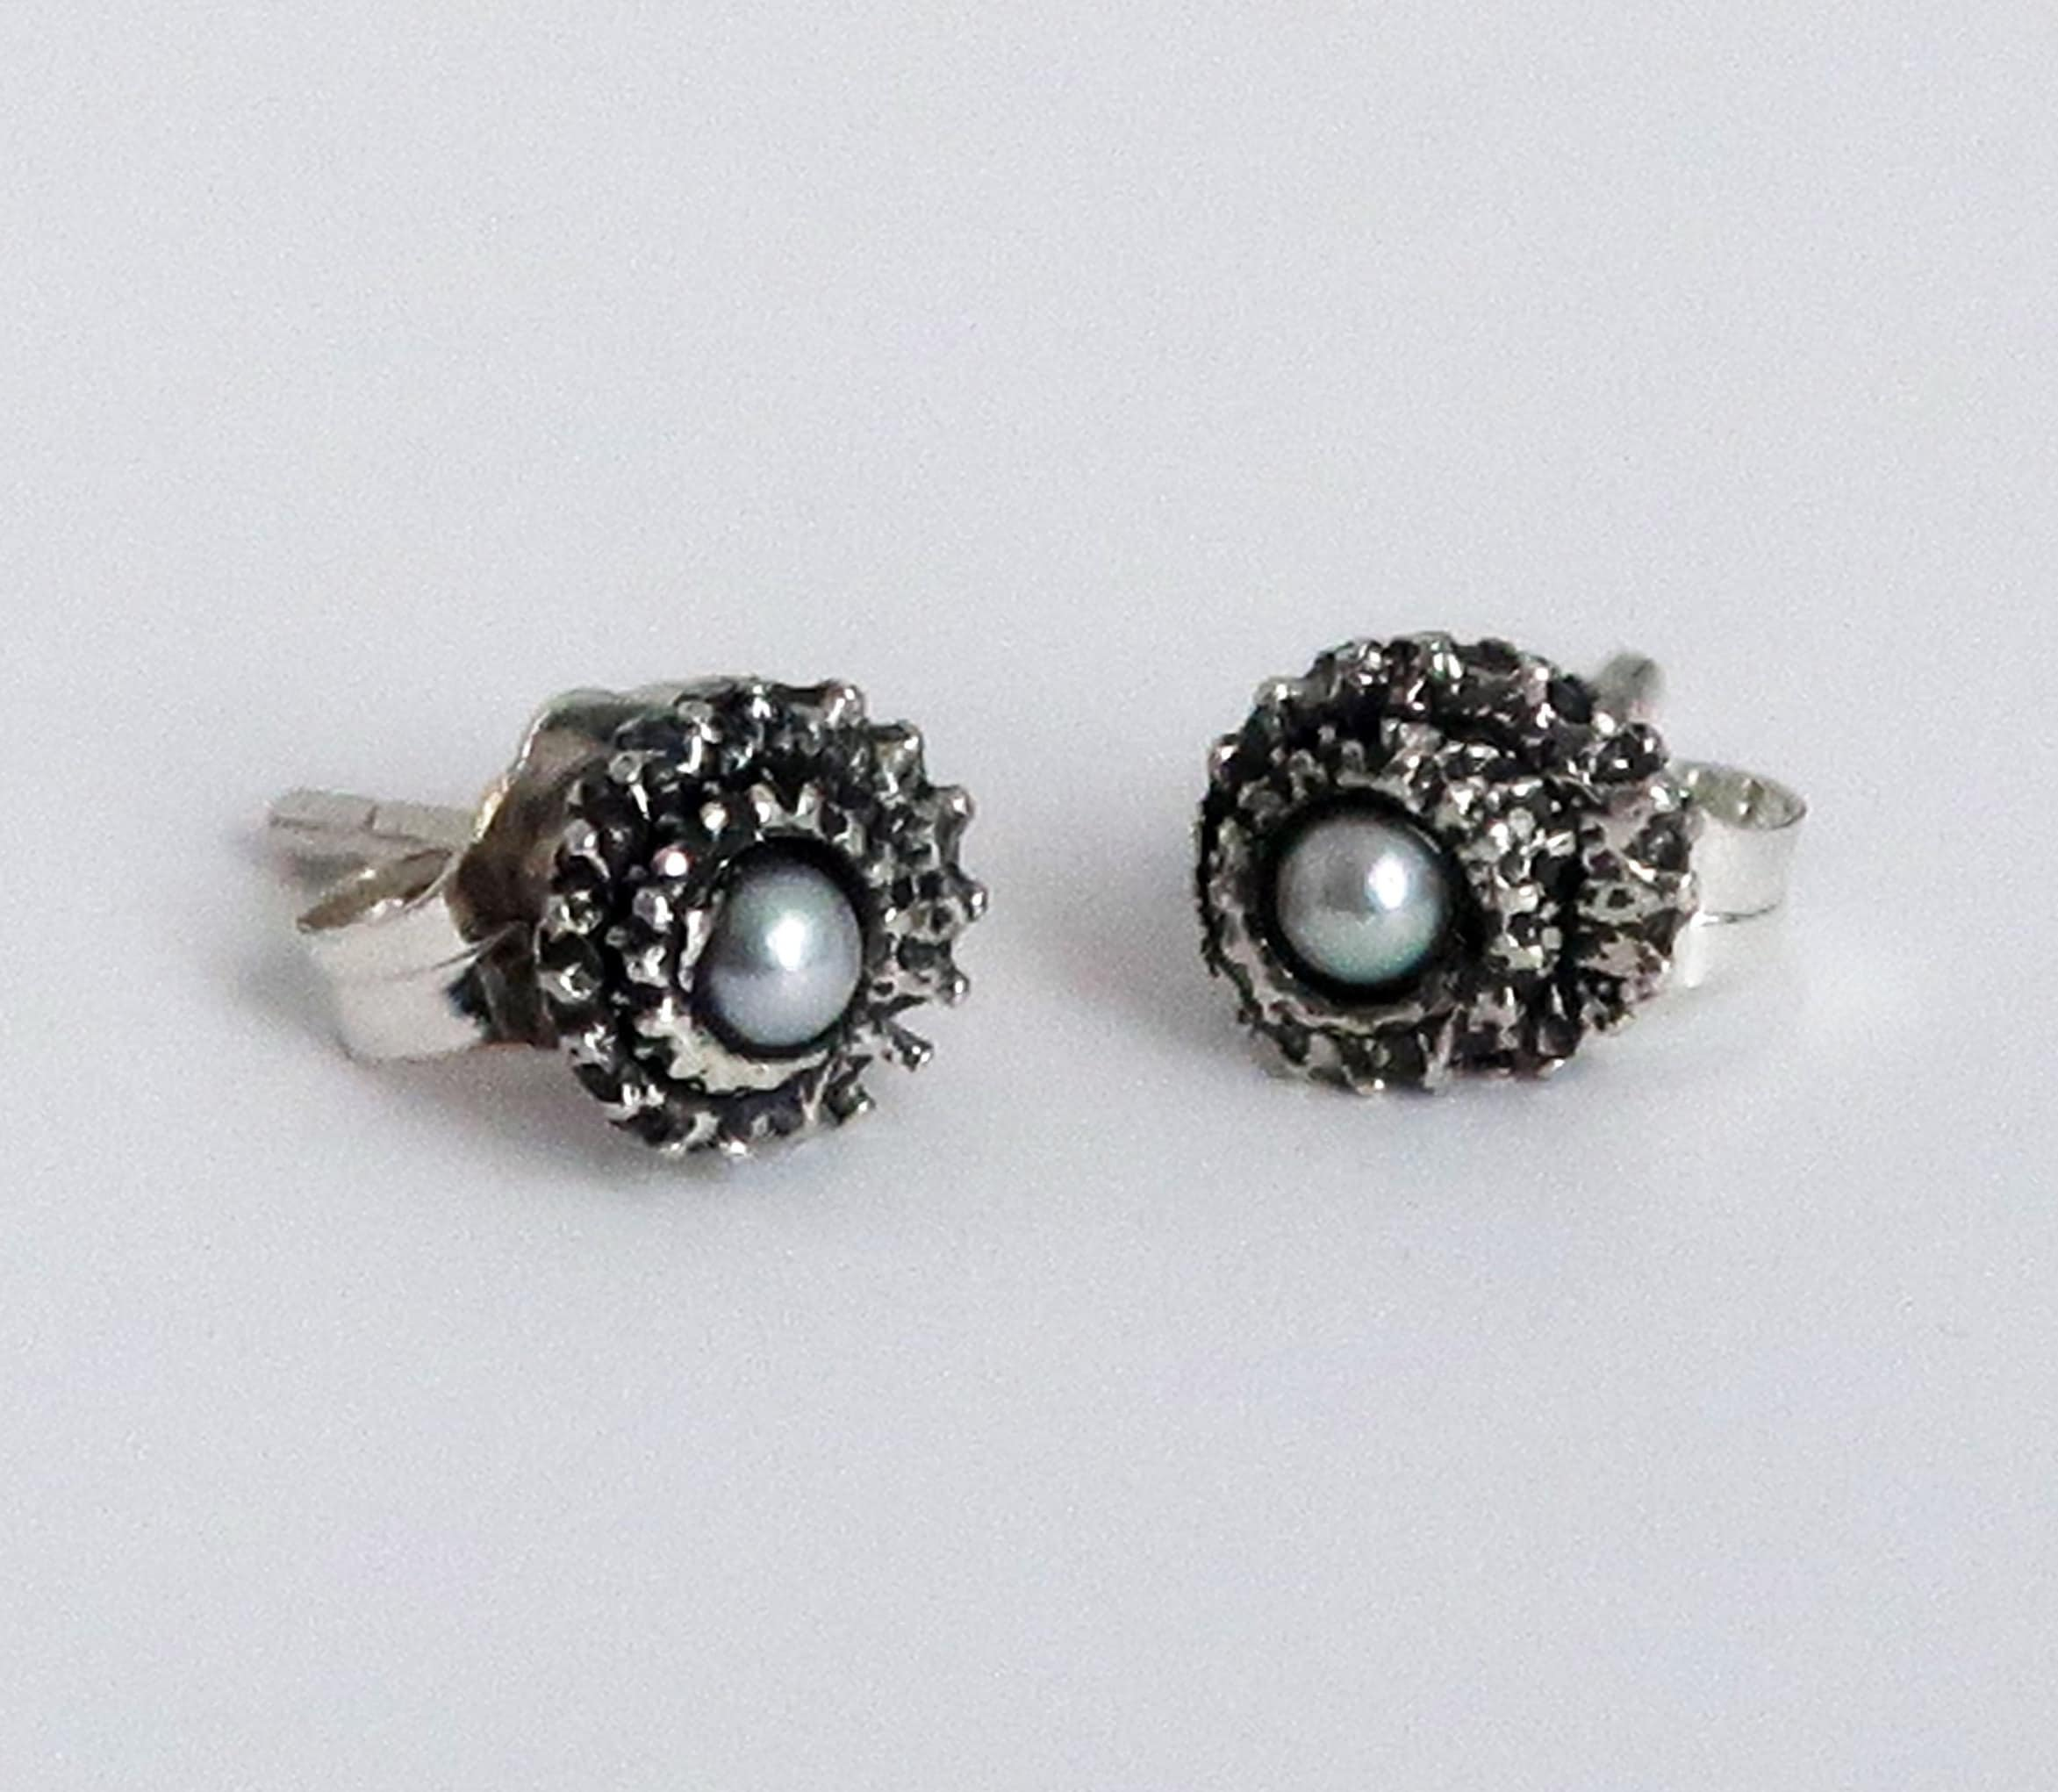 1f90b0b75 Blackened Sterling Silver and Pearl Tiny Tentacle Stud Earrings ...